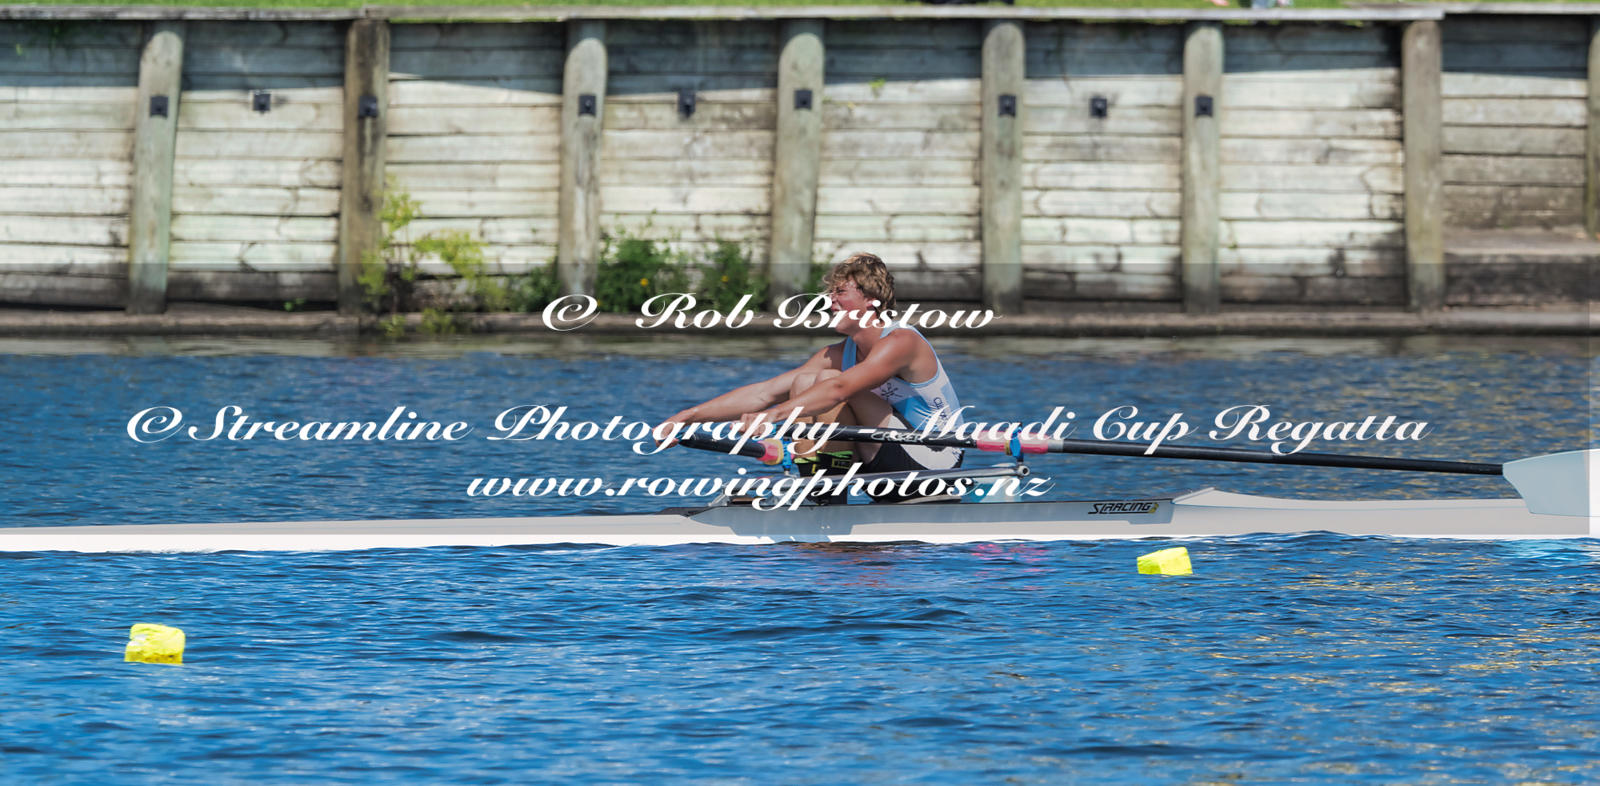 Taken during the Karapiro Xmas Regatta  2018, Lake Karapiro, Cambridge, New Zealand; ©  Rob Bristow; Taken on: Sunday - 16/12/2018-  at 10:32.38